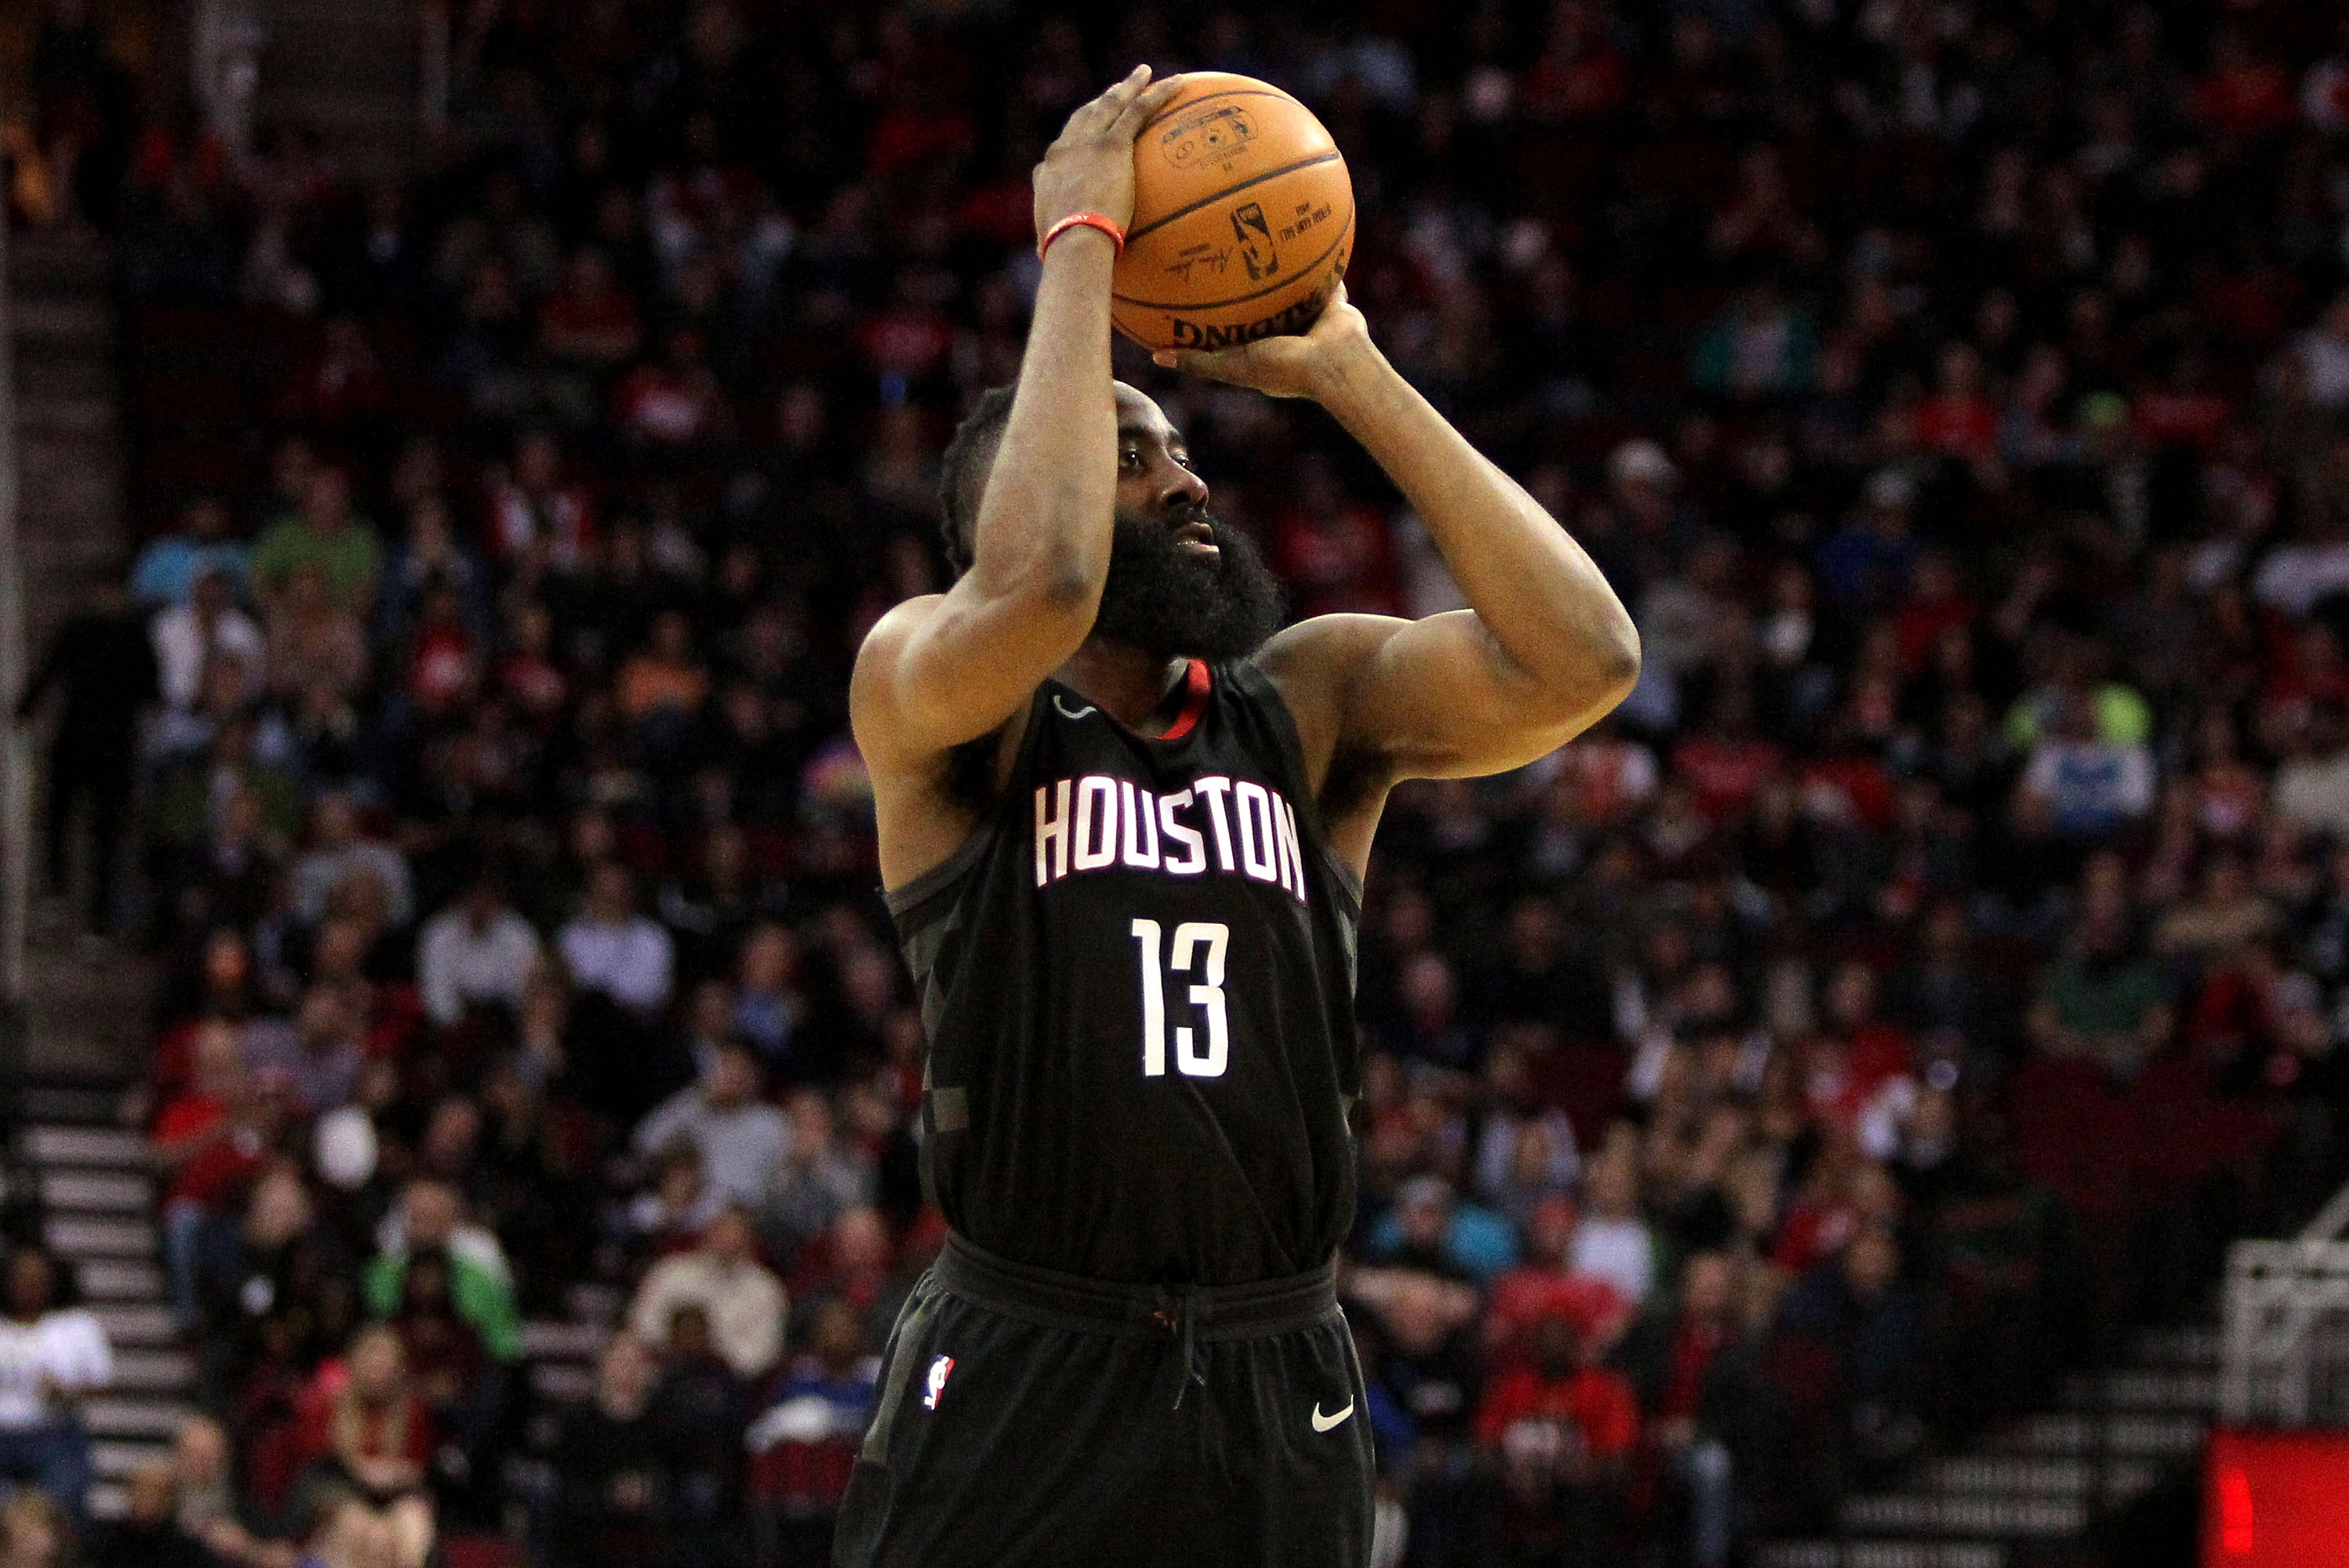 ee7f7a778f3 Five amazing stats from James Harden s historic 60-point game